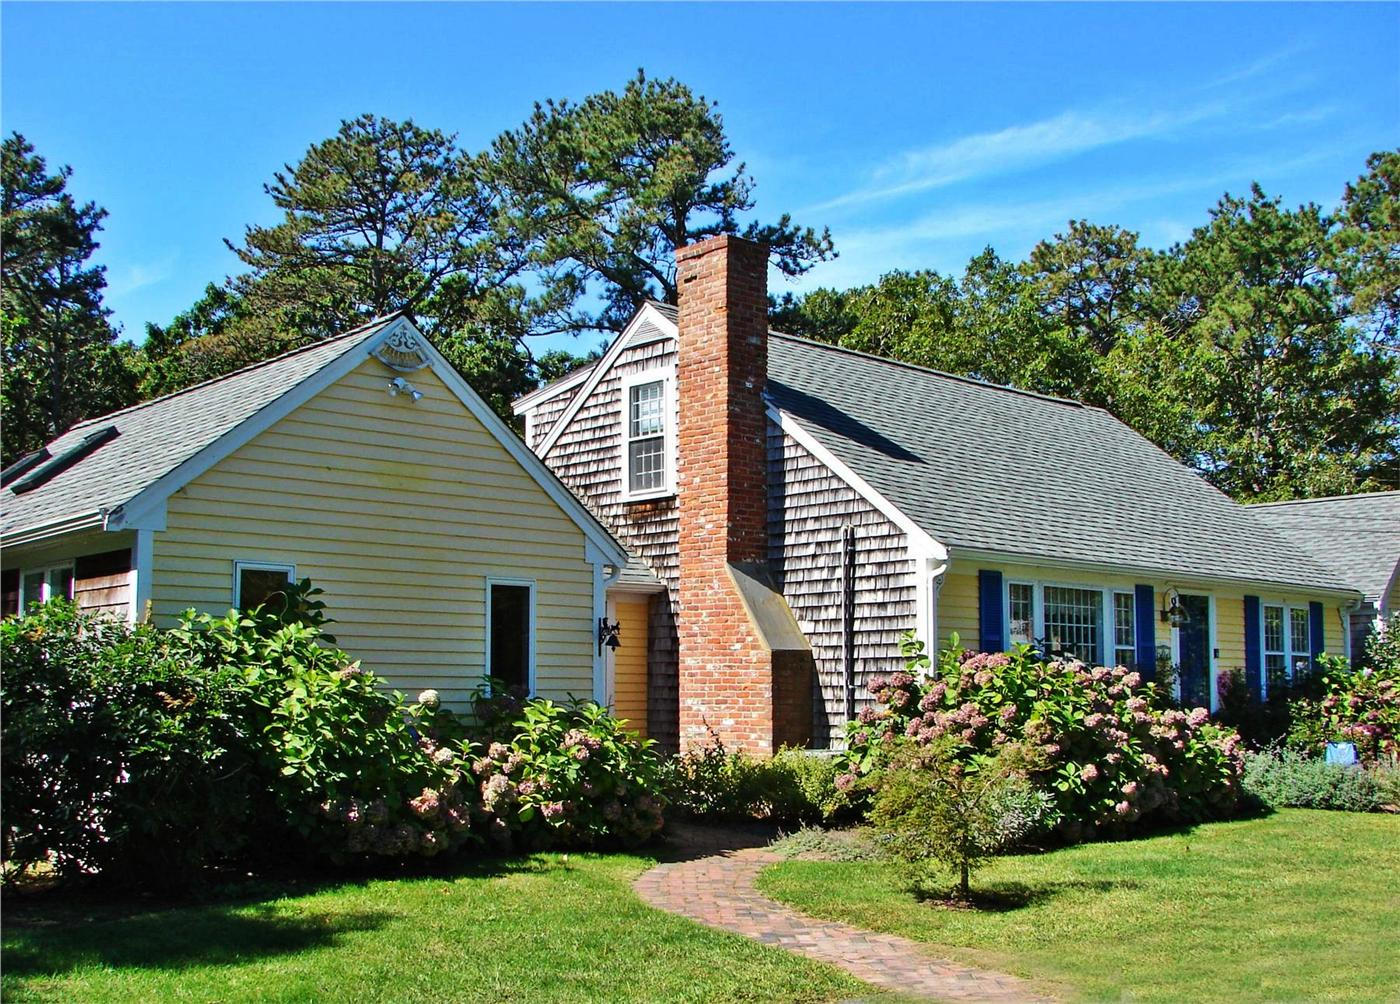 Brewster vacation rental home in cape cod ma 02631 1 2 for Cabin rentals in cape cod ma